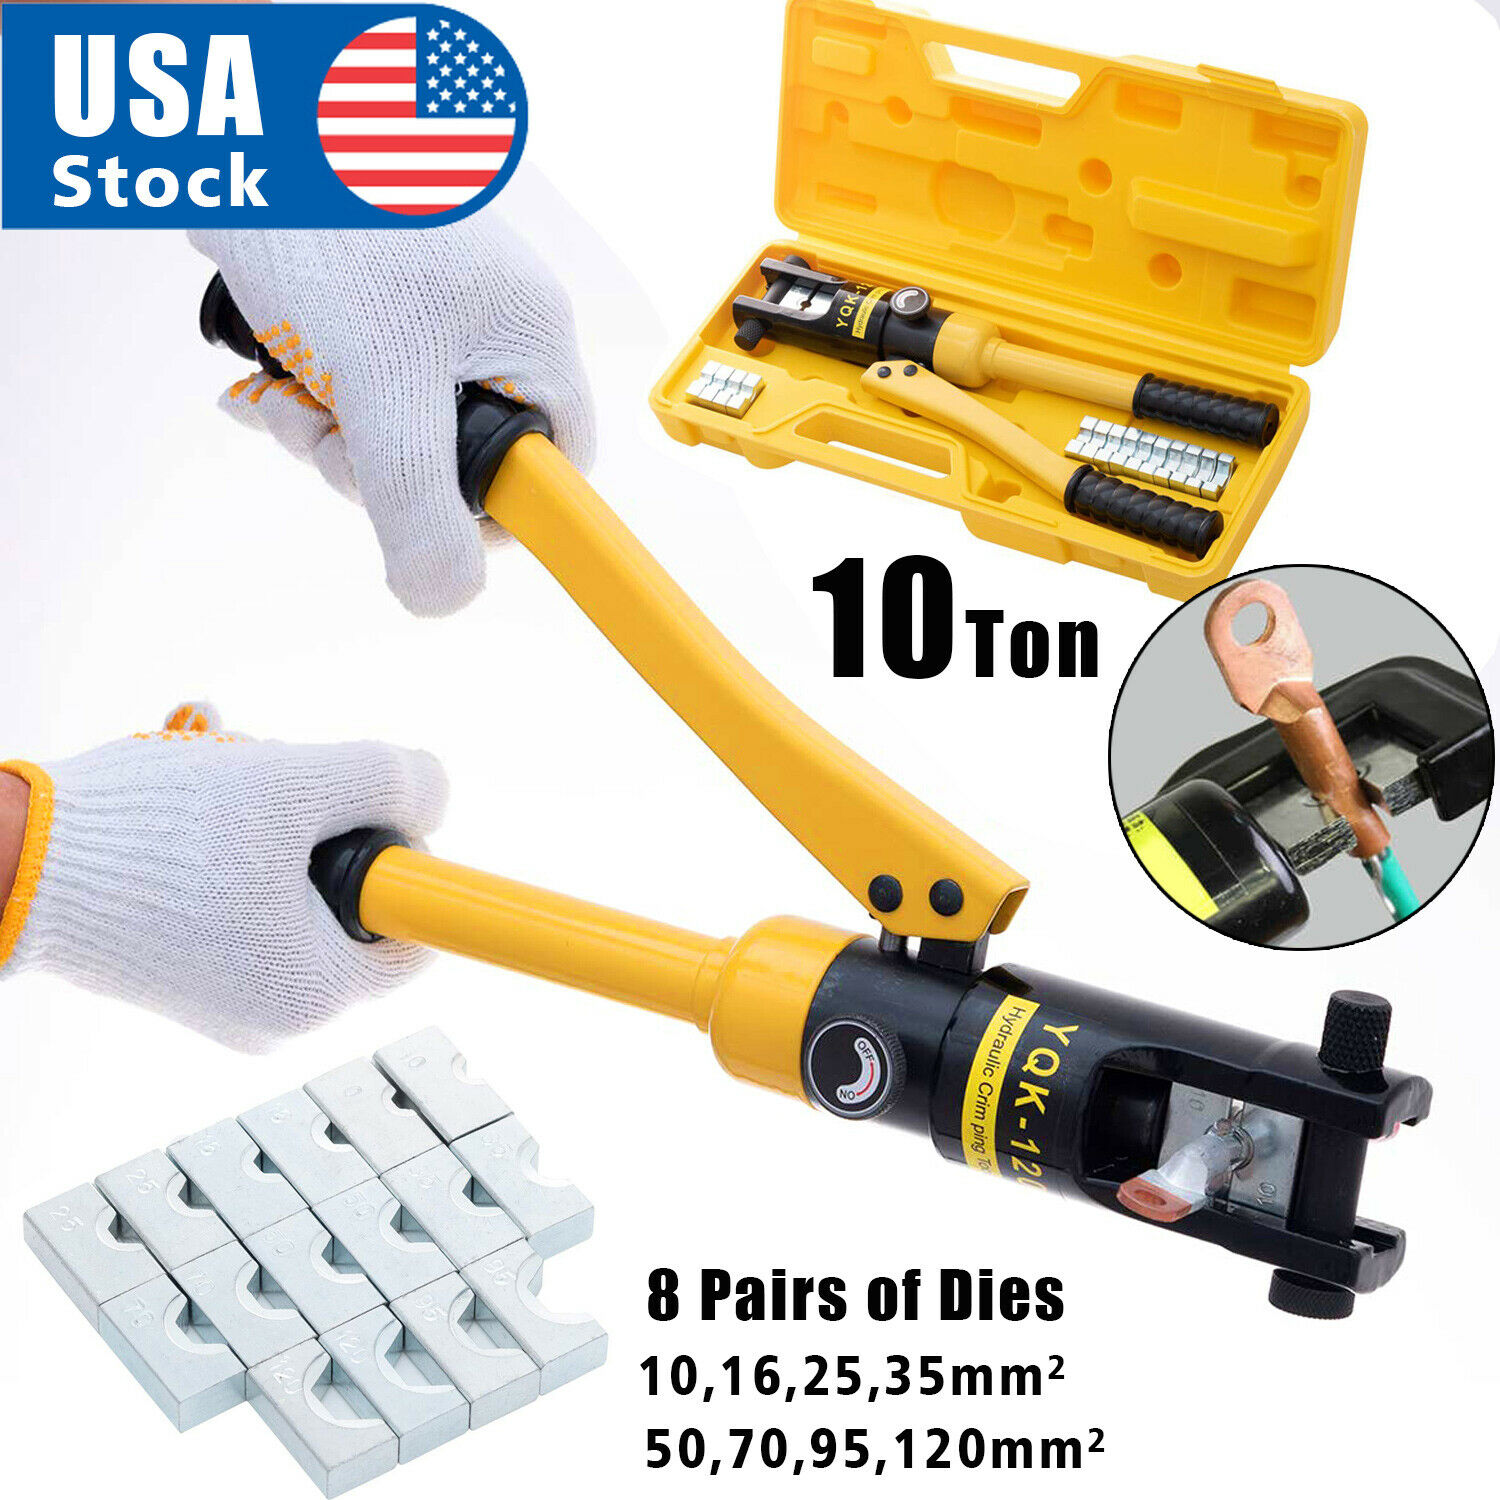 10 Ton Hydraulic Wire Crimper Battery Cable Lug Terminal Crimping Tool w/ 8 Die Business & Industrial